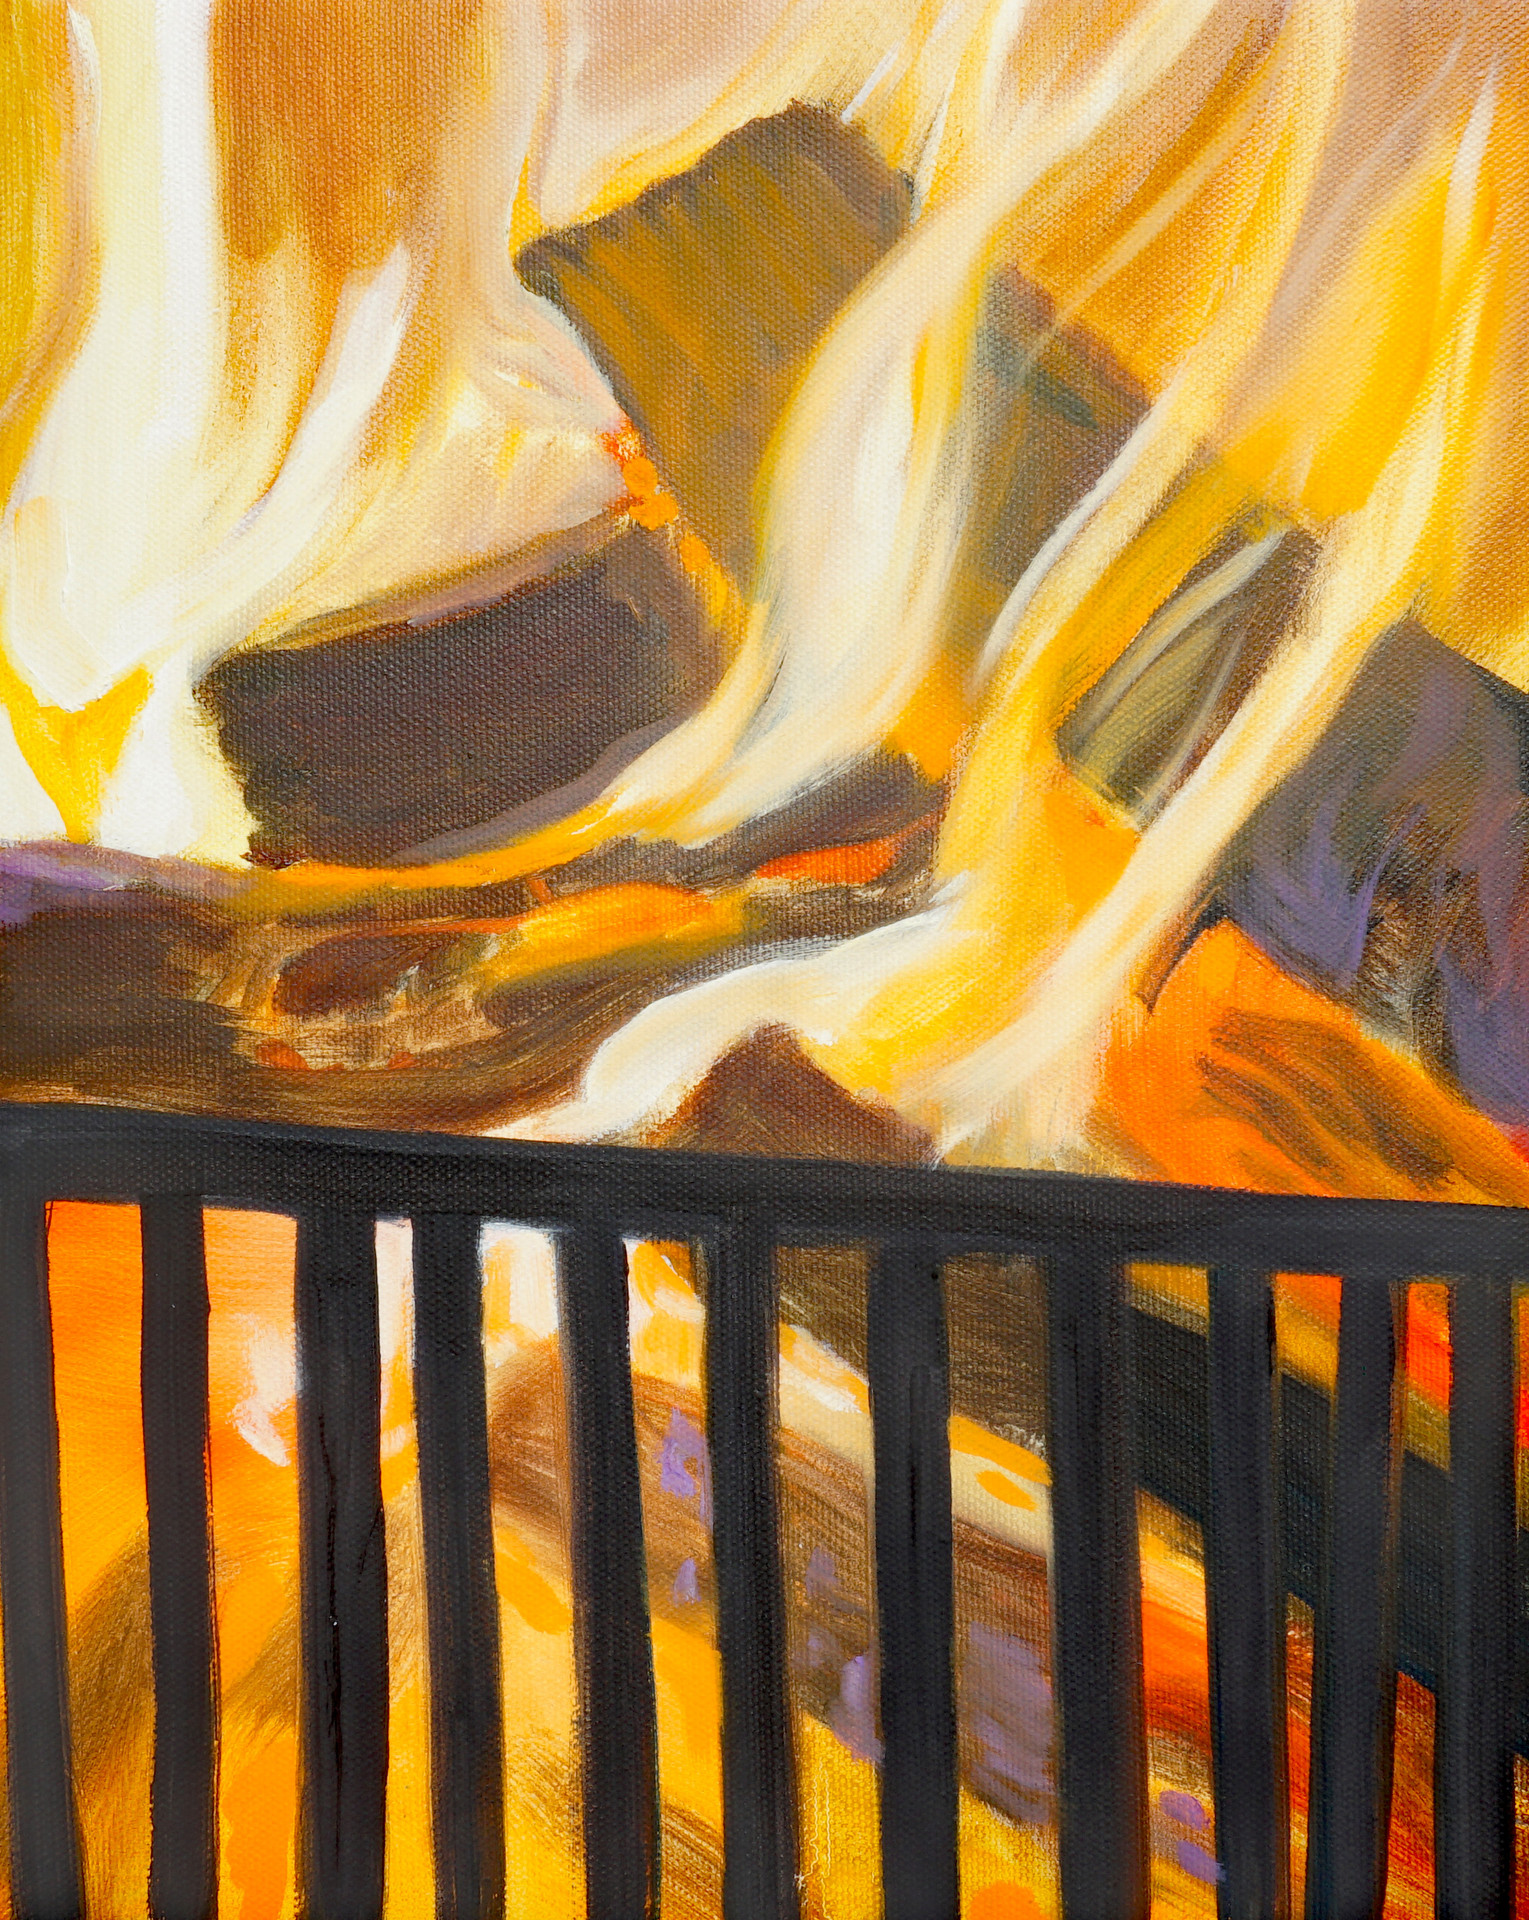 Fire, oil paint on canvas, 18 x 14 inches, 2021